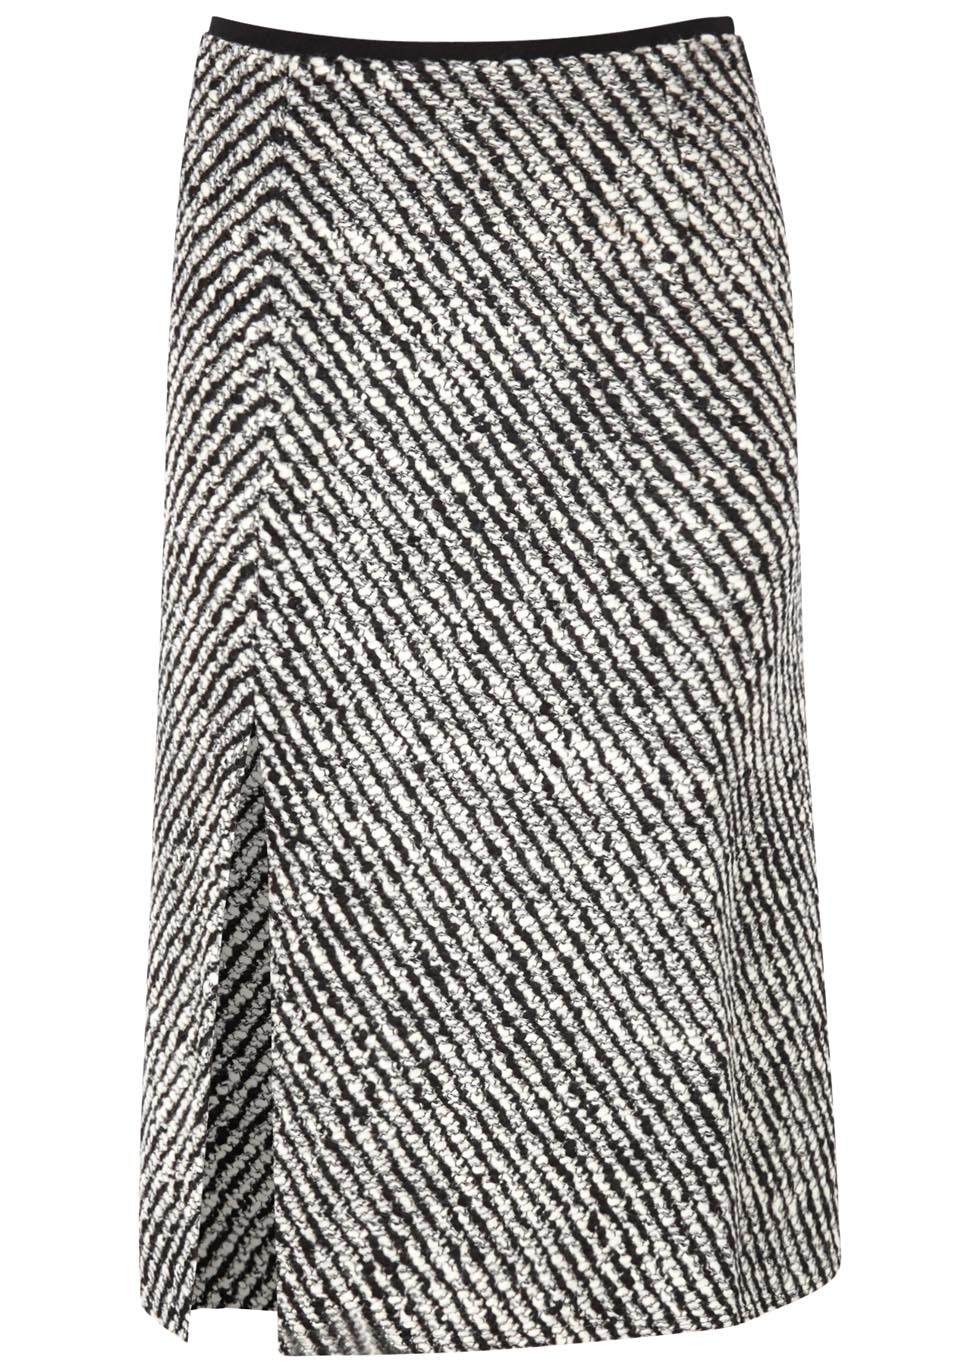 Inko Bouclé Tweed Midi Skirt - length: below the knee; style: straight; pattern: herringbone/tweed; waist: mid/regular rise; predominant colour: white; secondary colour: black; occasions: work, creative work; fibres: wool - mix; fit: straight cut; pattern type: knitted - other; texture group: tweed - light/midweight; pattern size: standard (bottom); season: a/w 2016; wardrobe: highlight